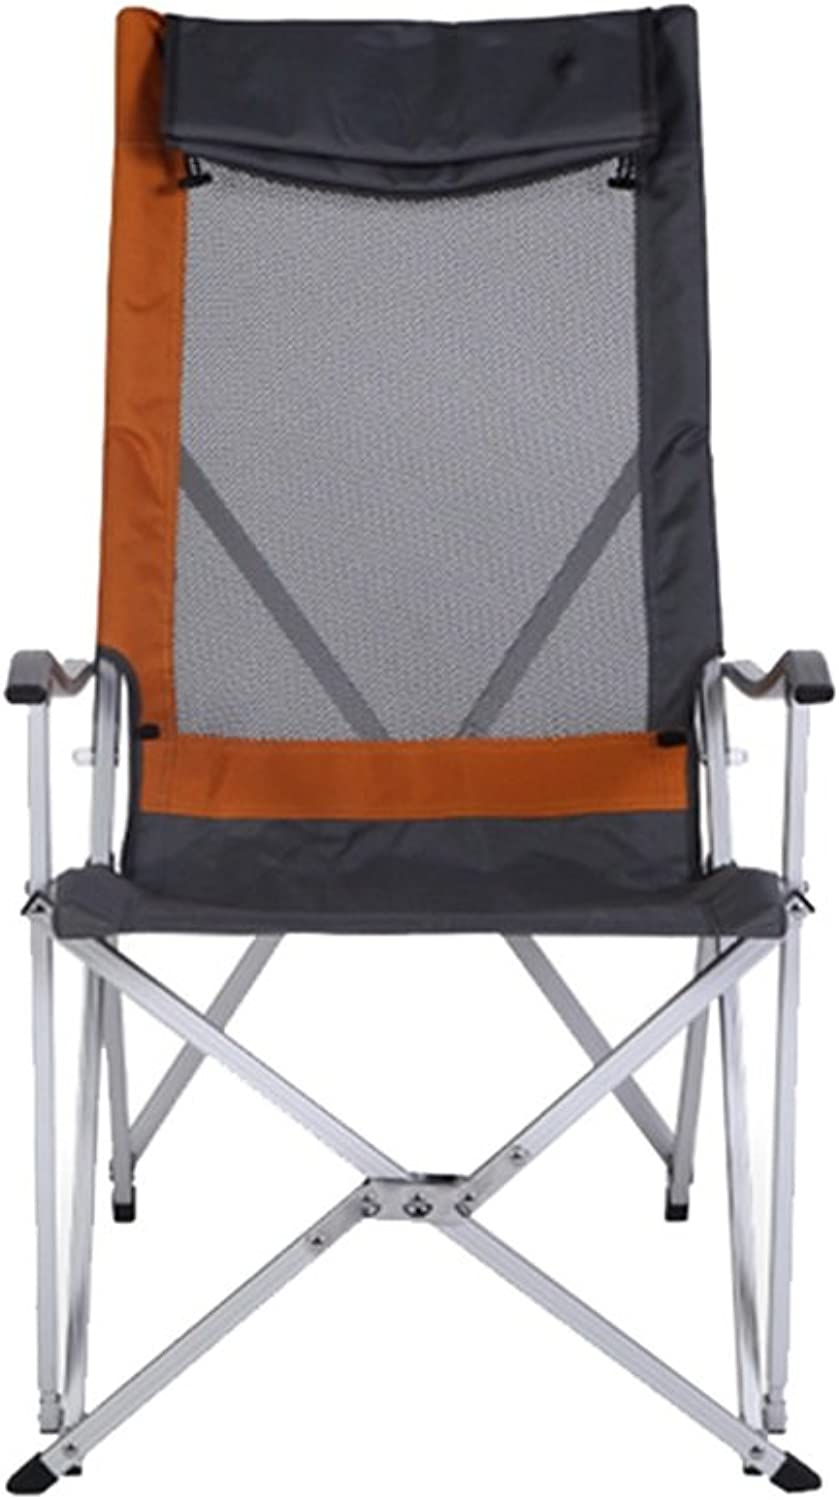 Stool Folding Chair Ergonomics Portable Sturdy Black Lounge Deck Chair for Fishing Camping